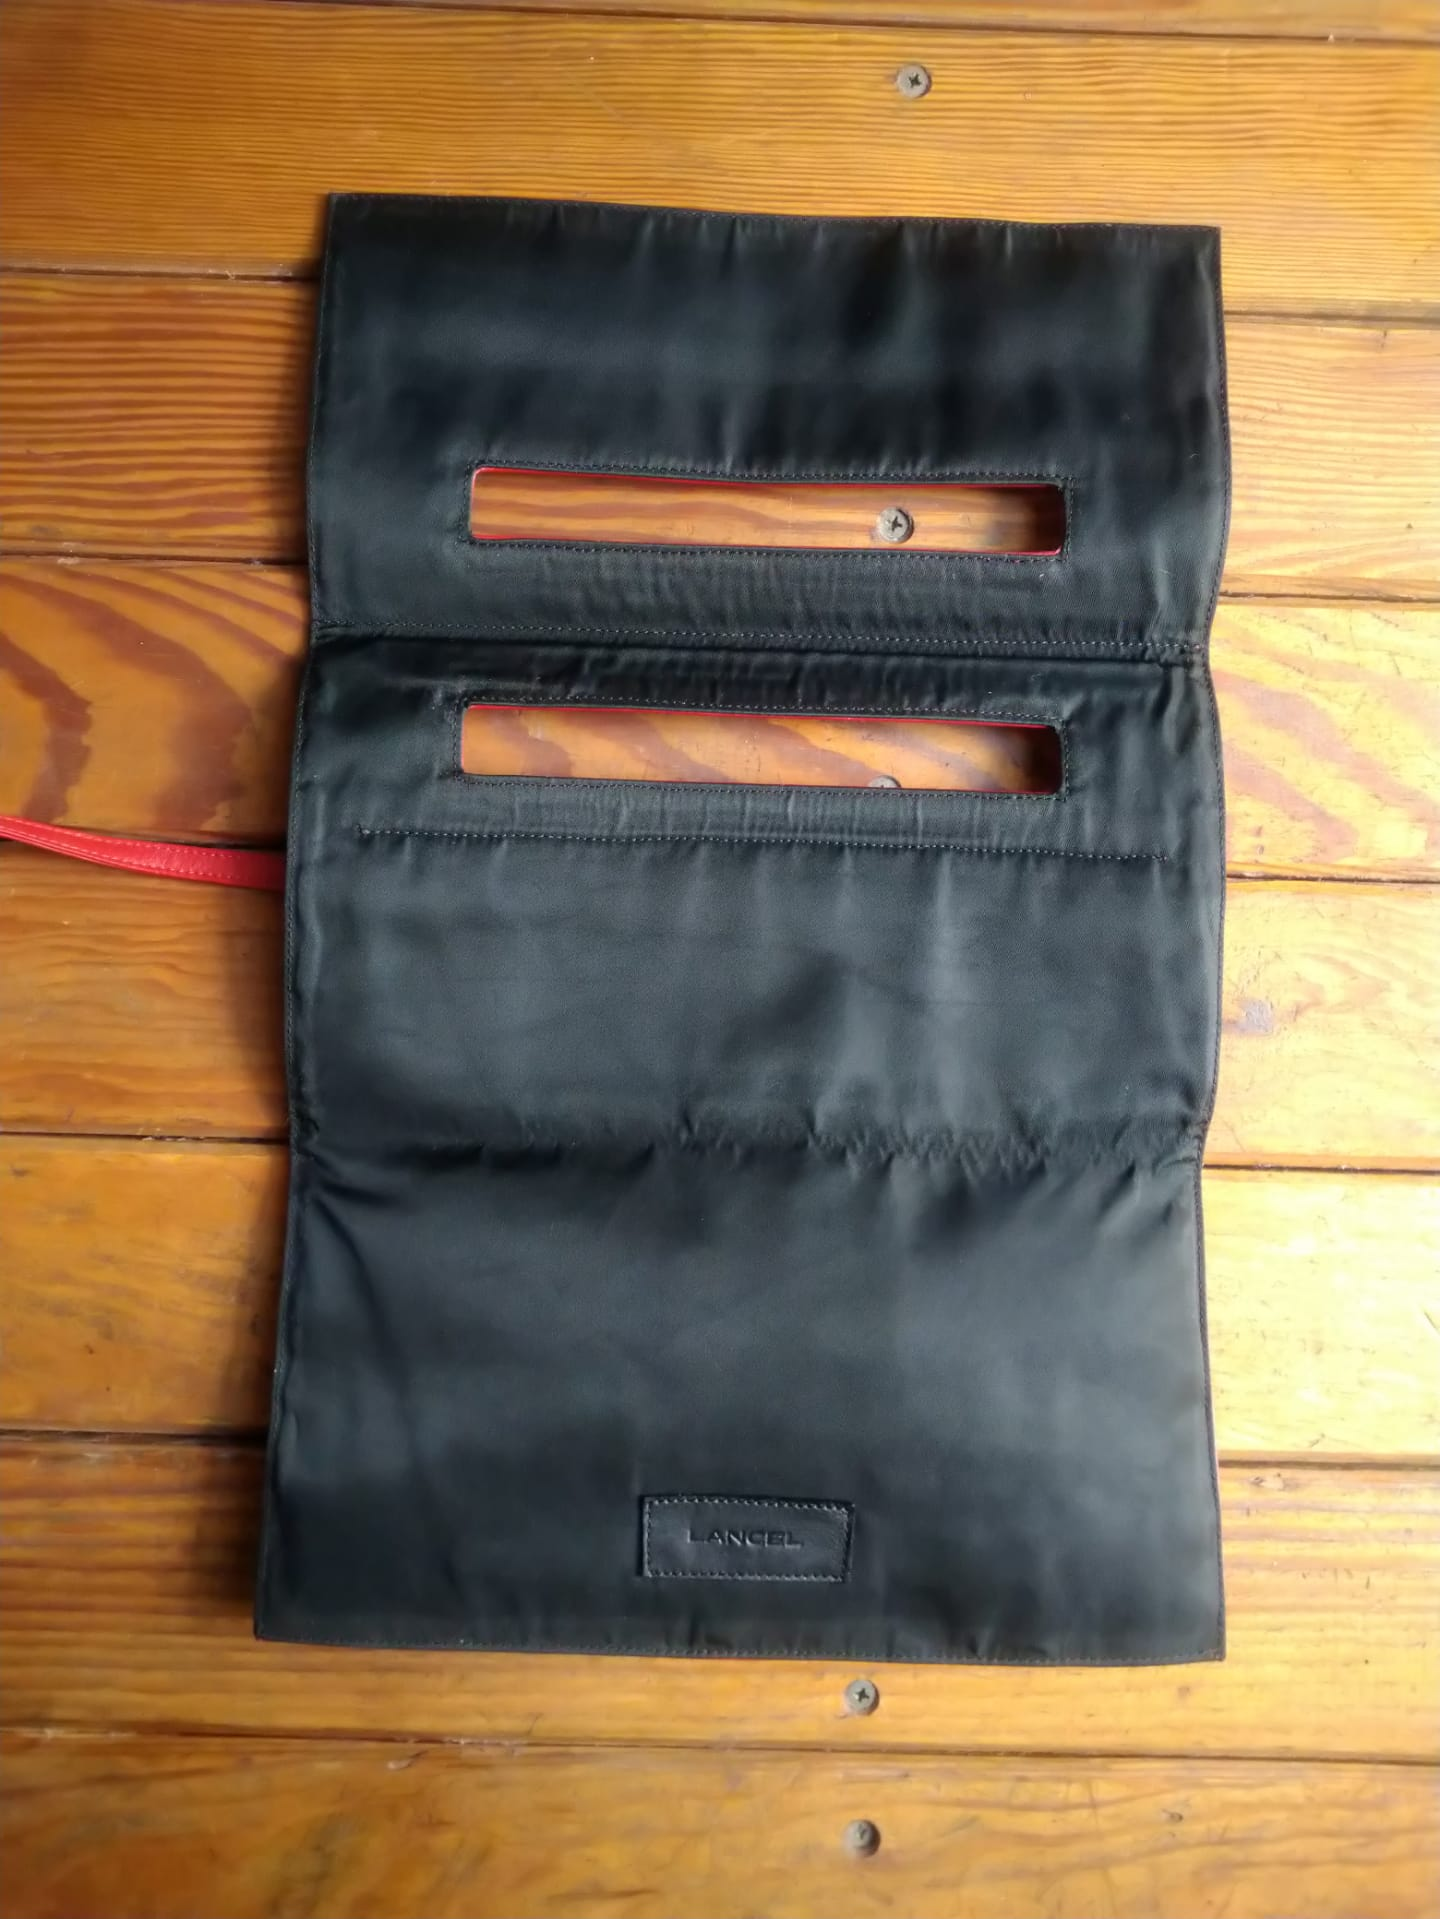 Lancel numbered pouch